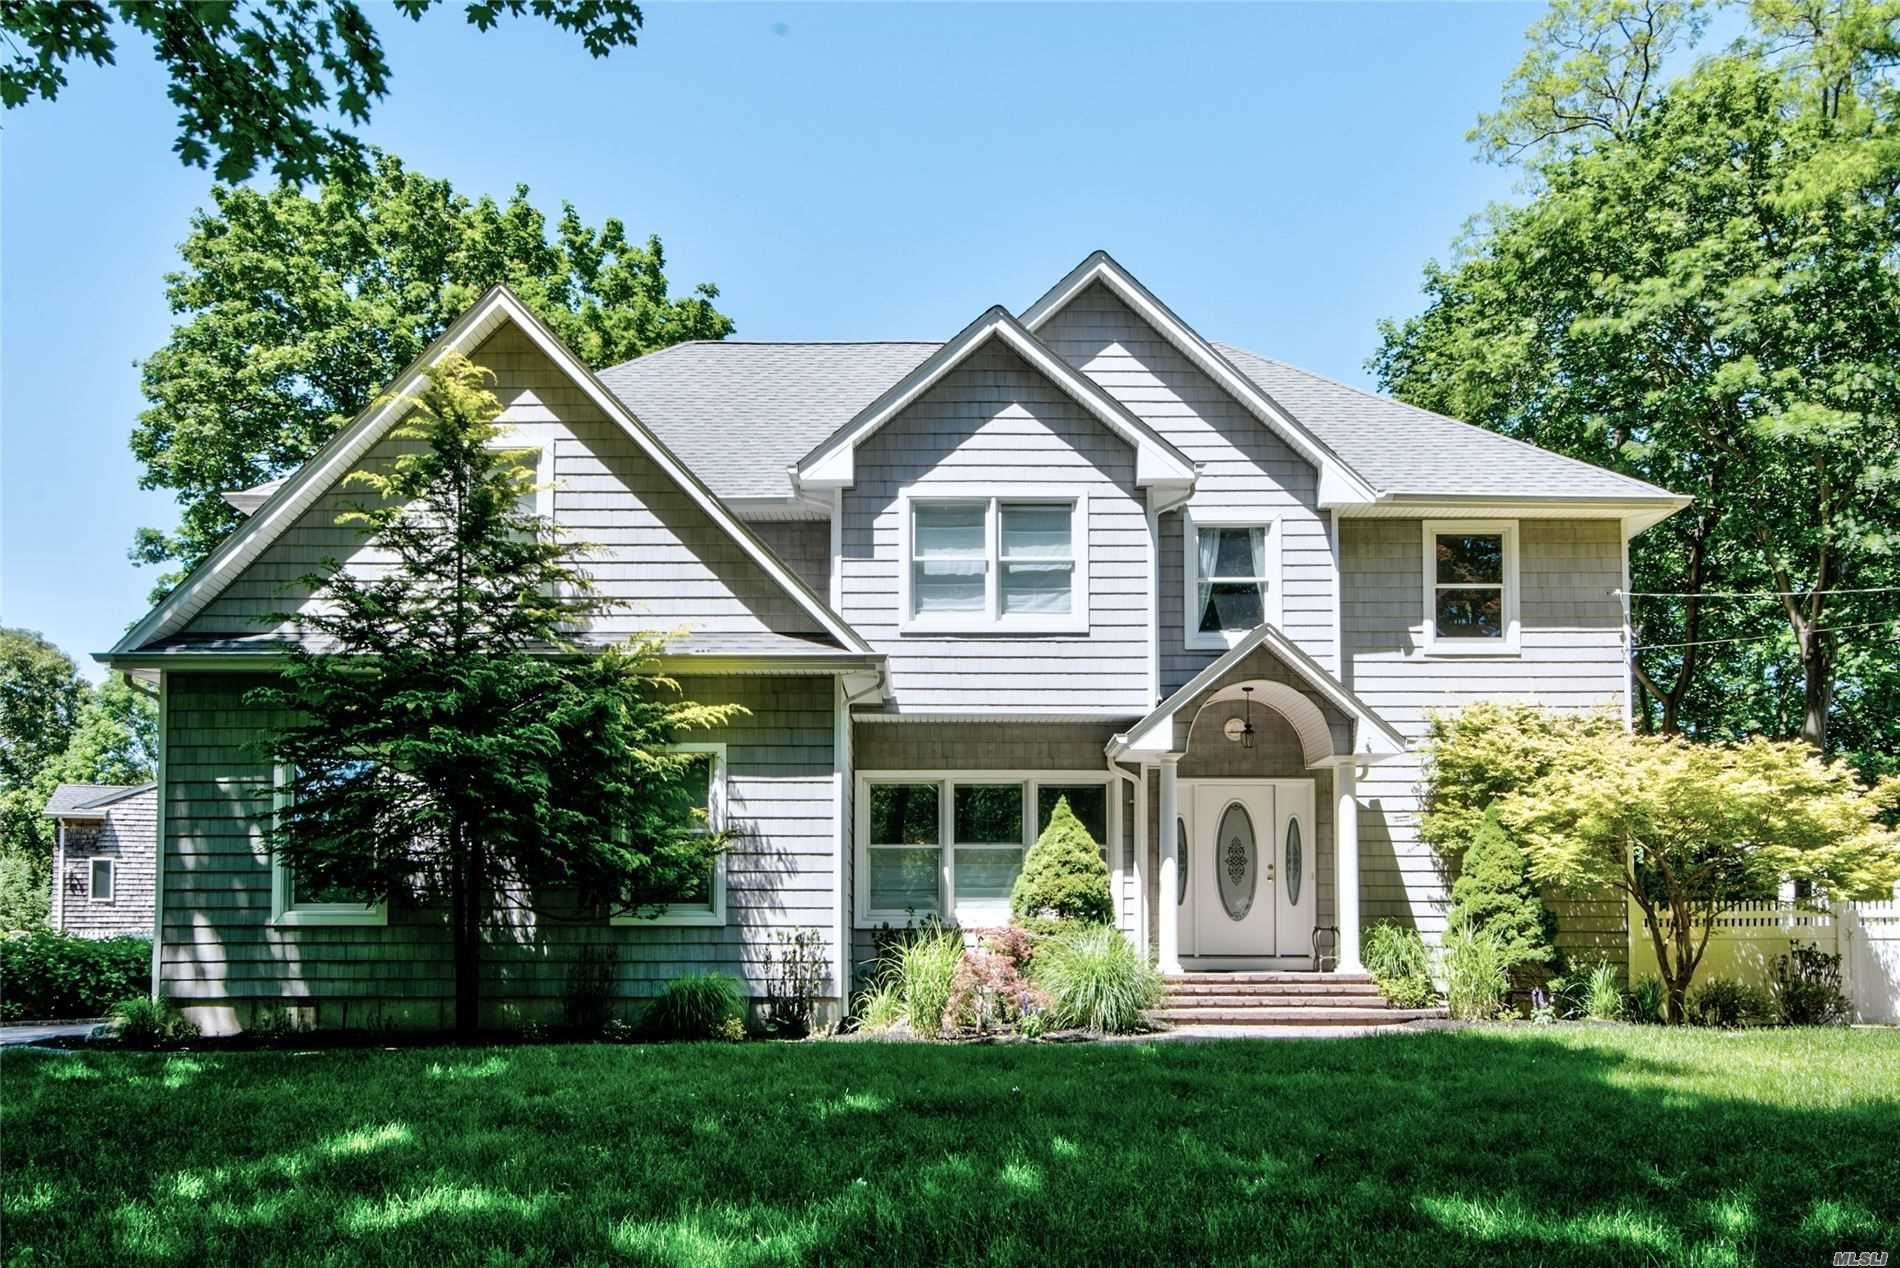 33 Hilltop Drive, Miller Place, NY 11764 - MLS#: 3220643